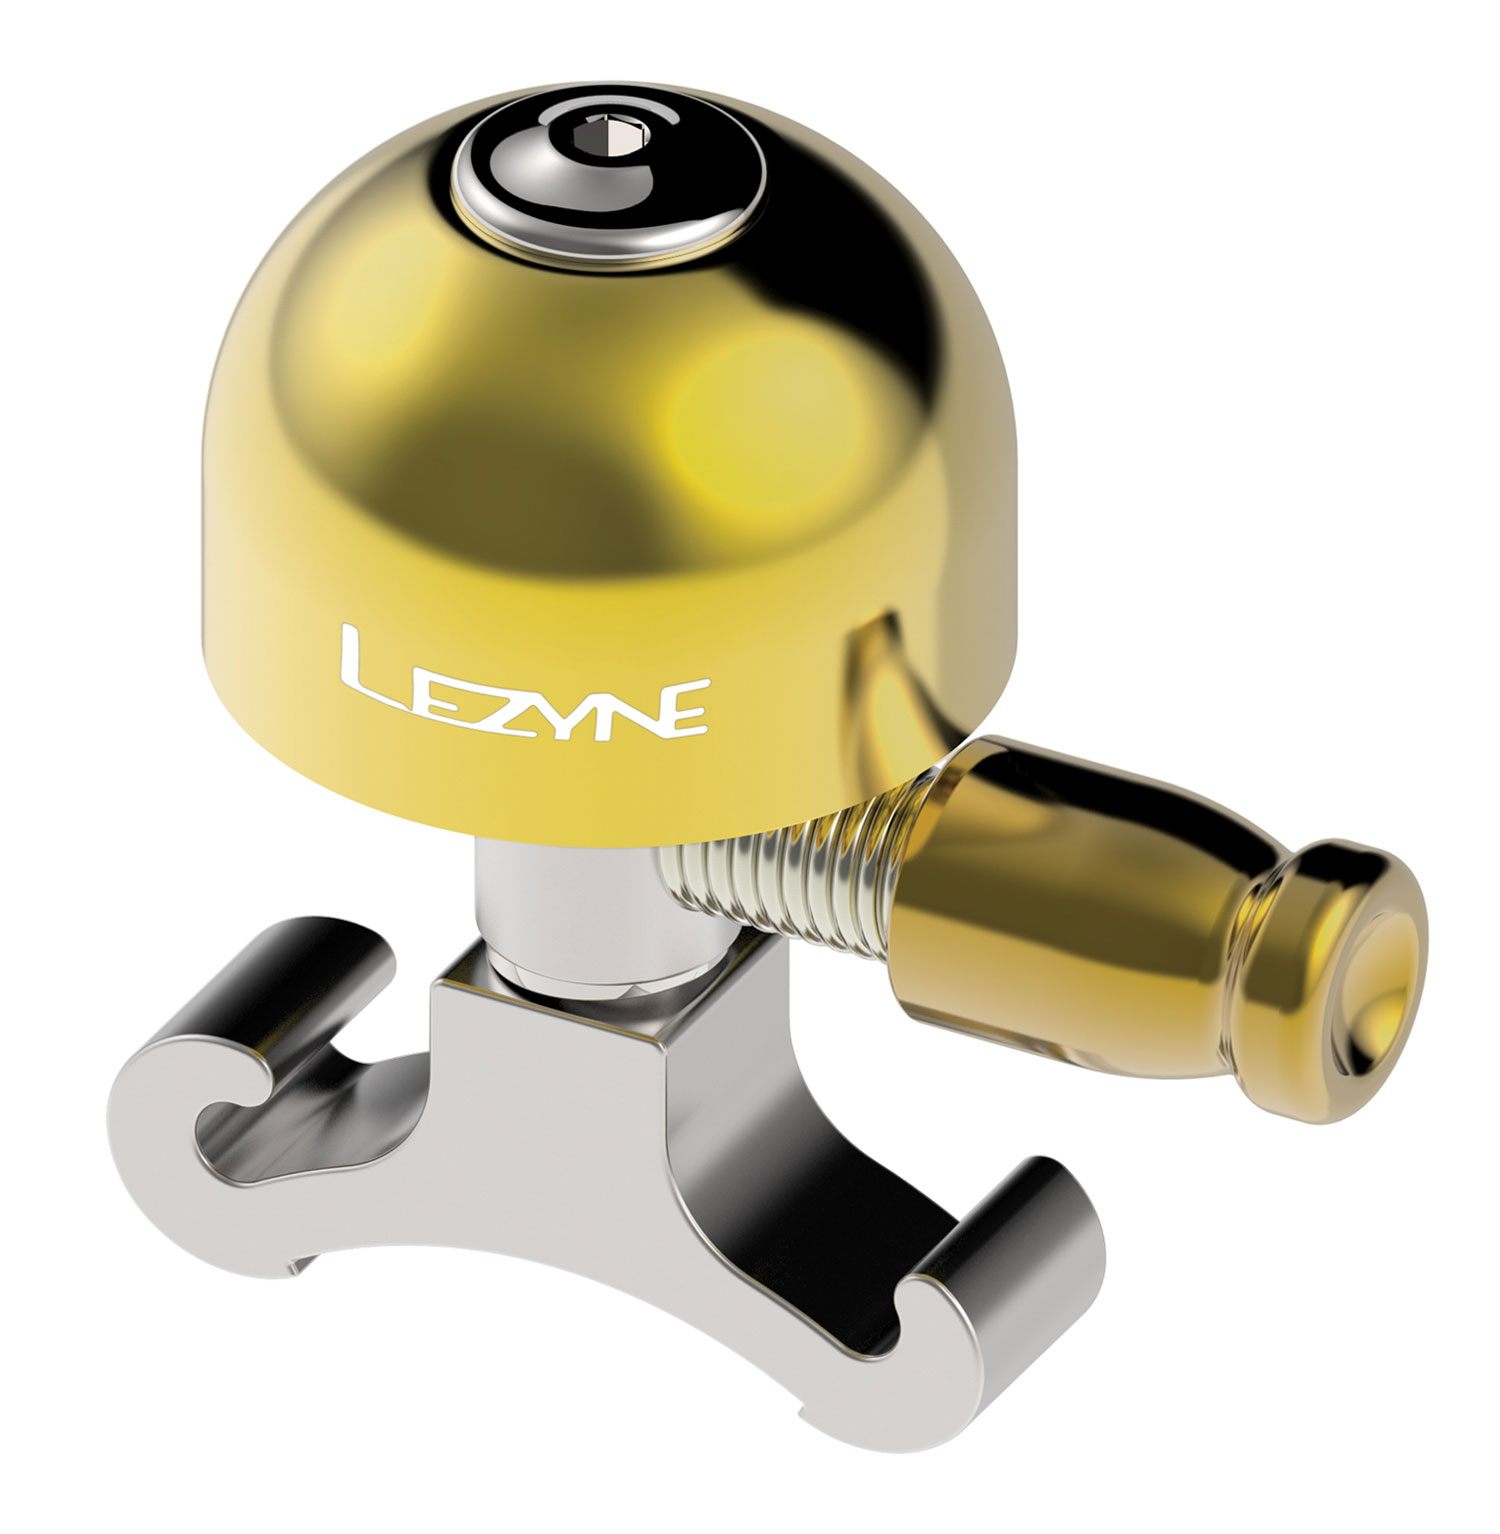 lezyne engineered design products gps accessories